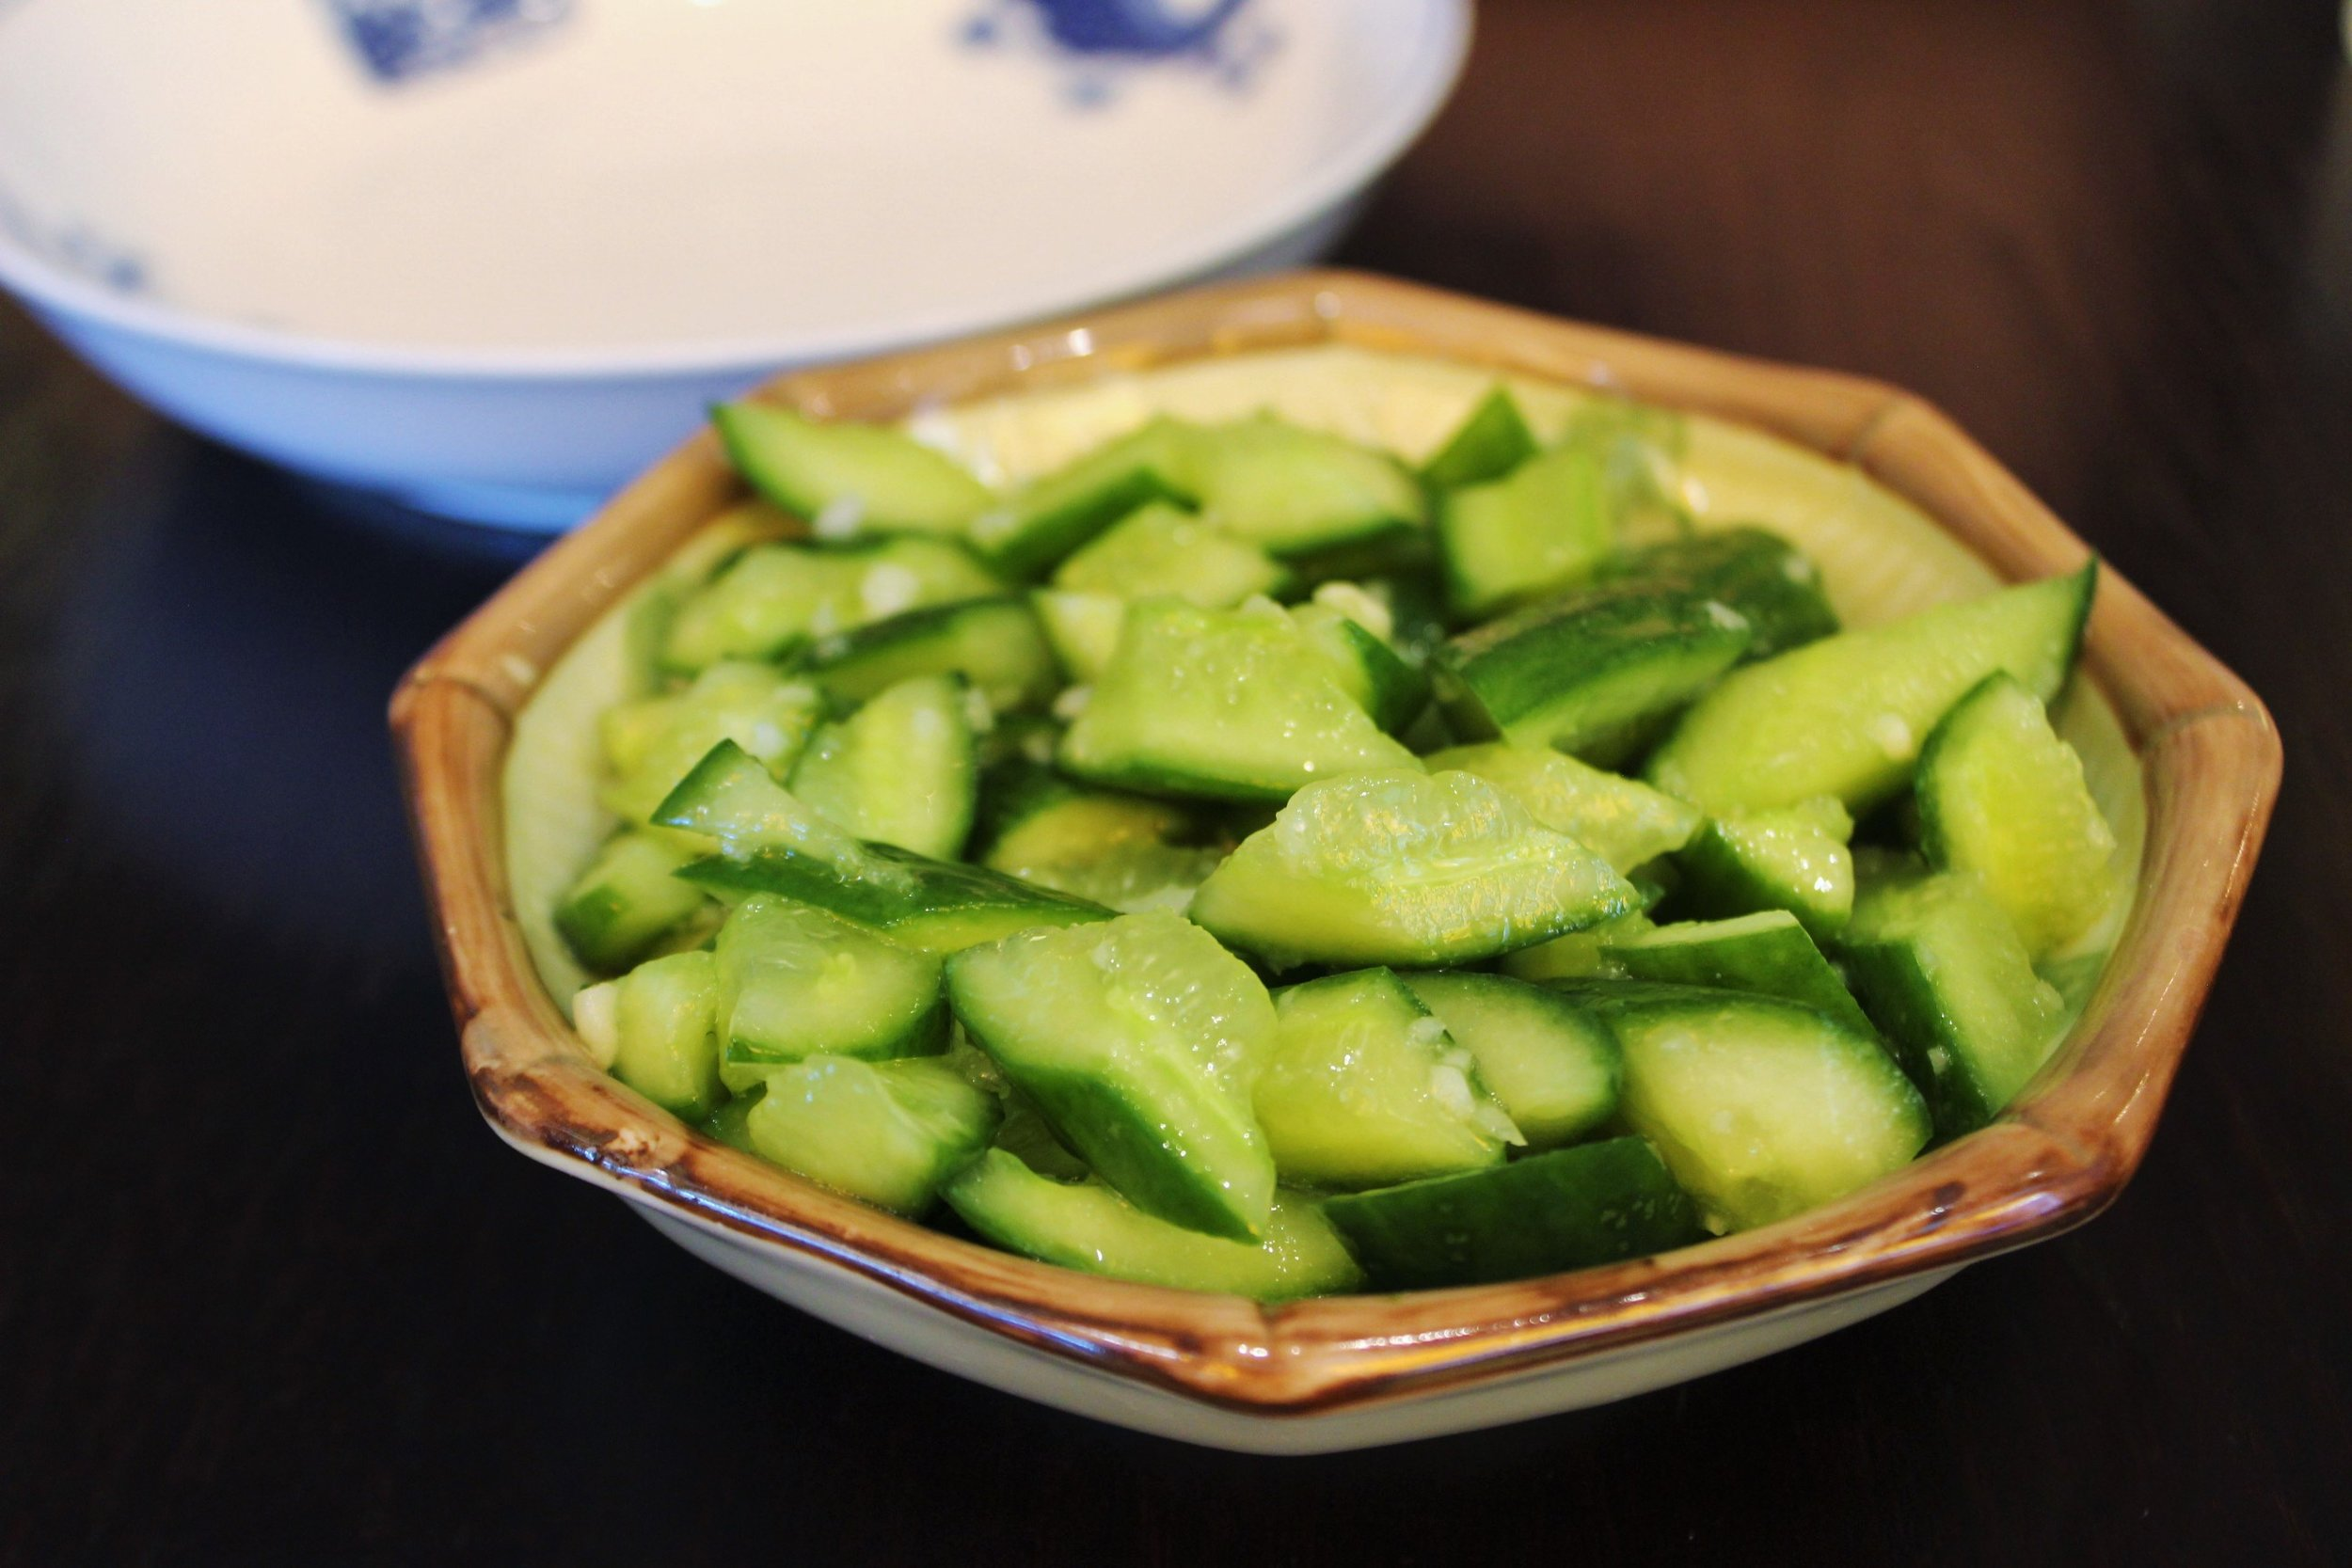 Baby Cucumber in Garlic Sauce at Cafe China